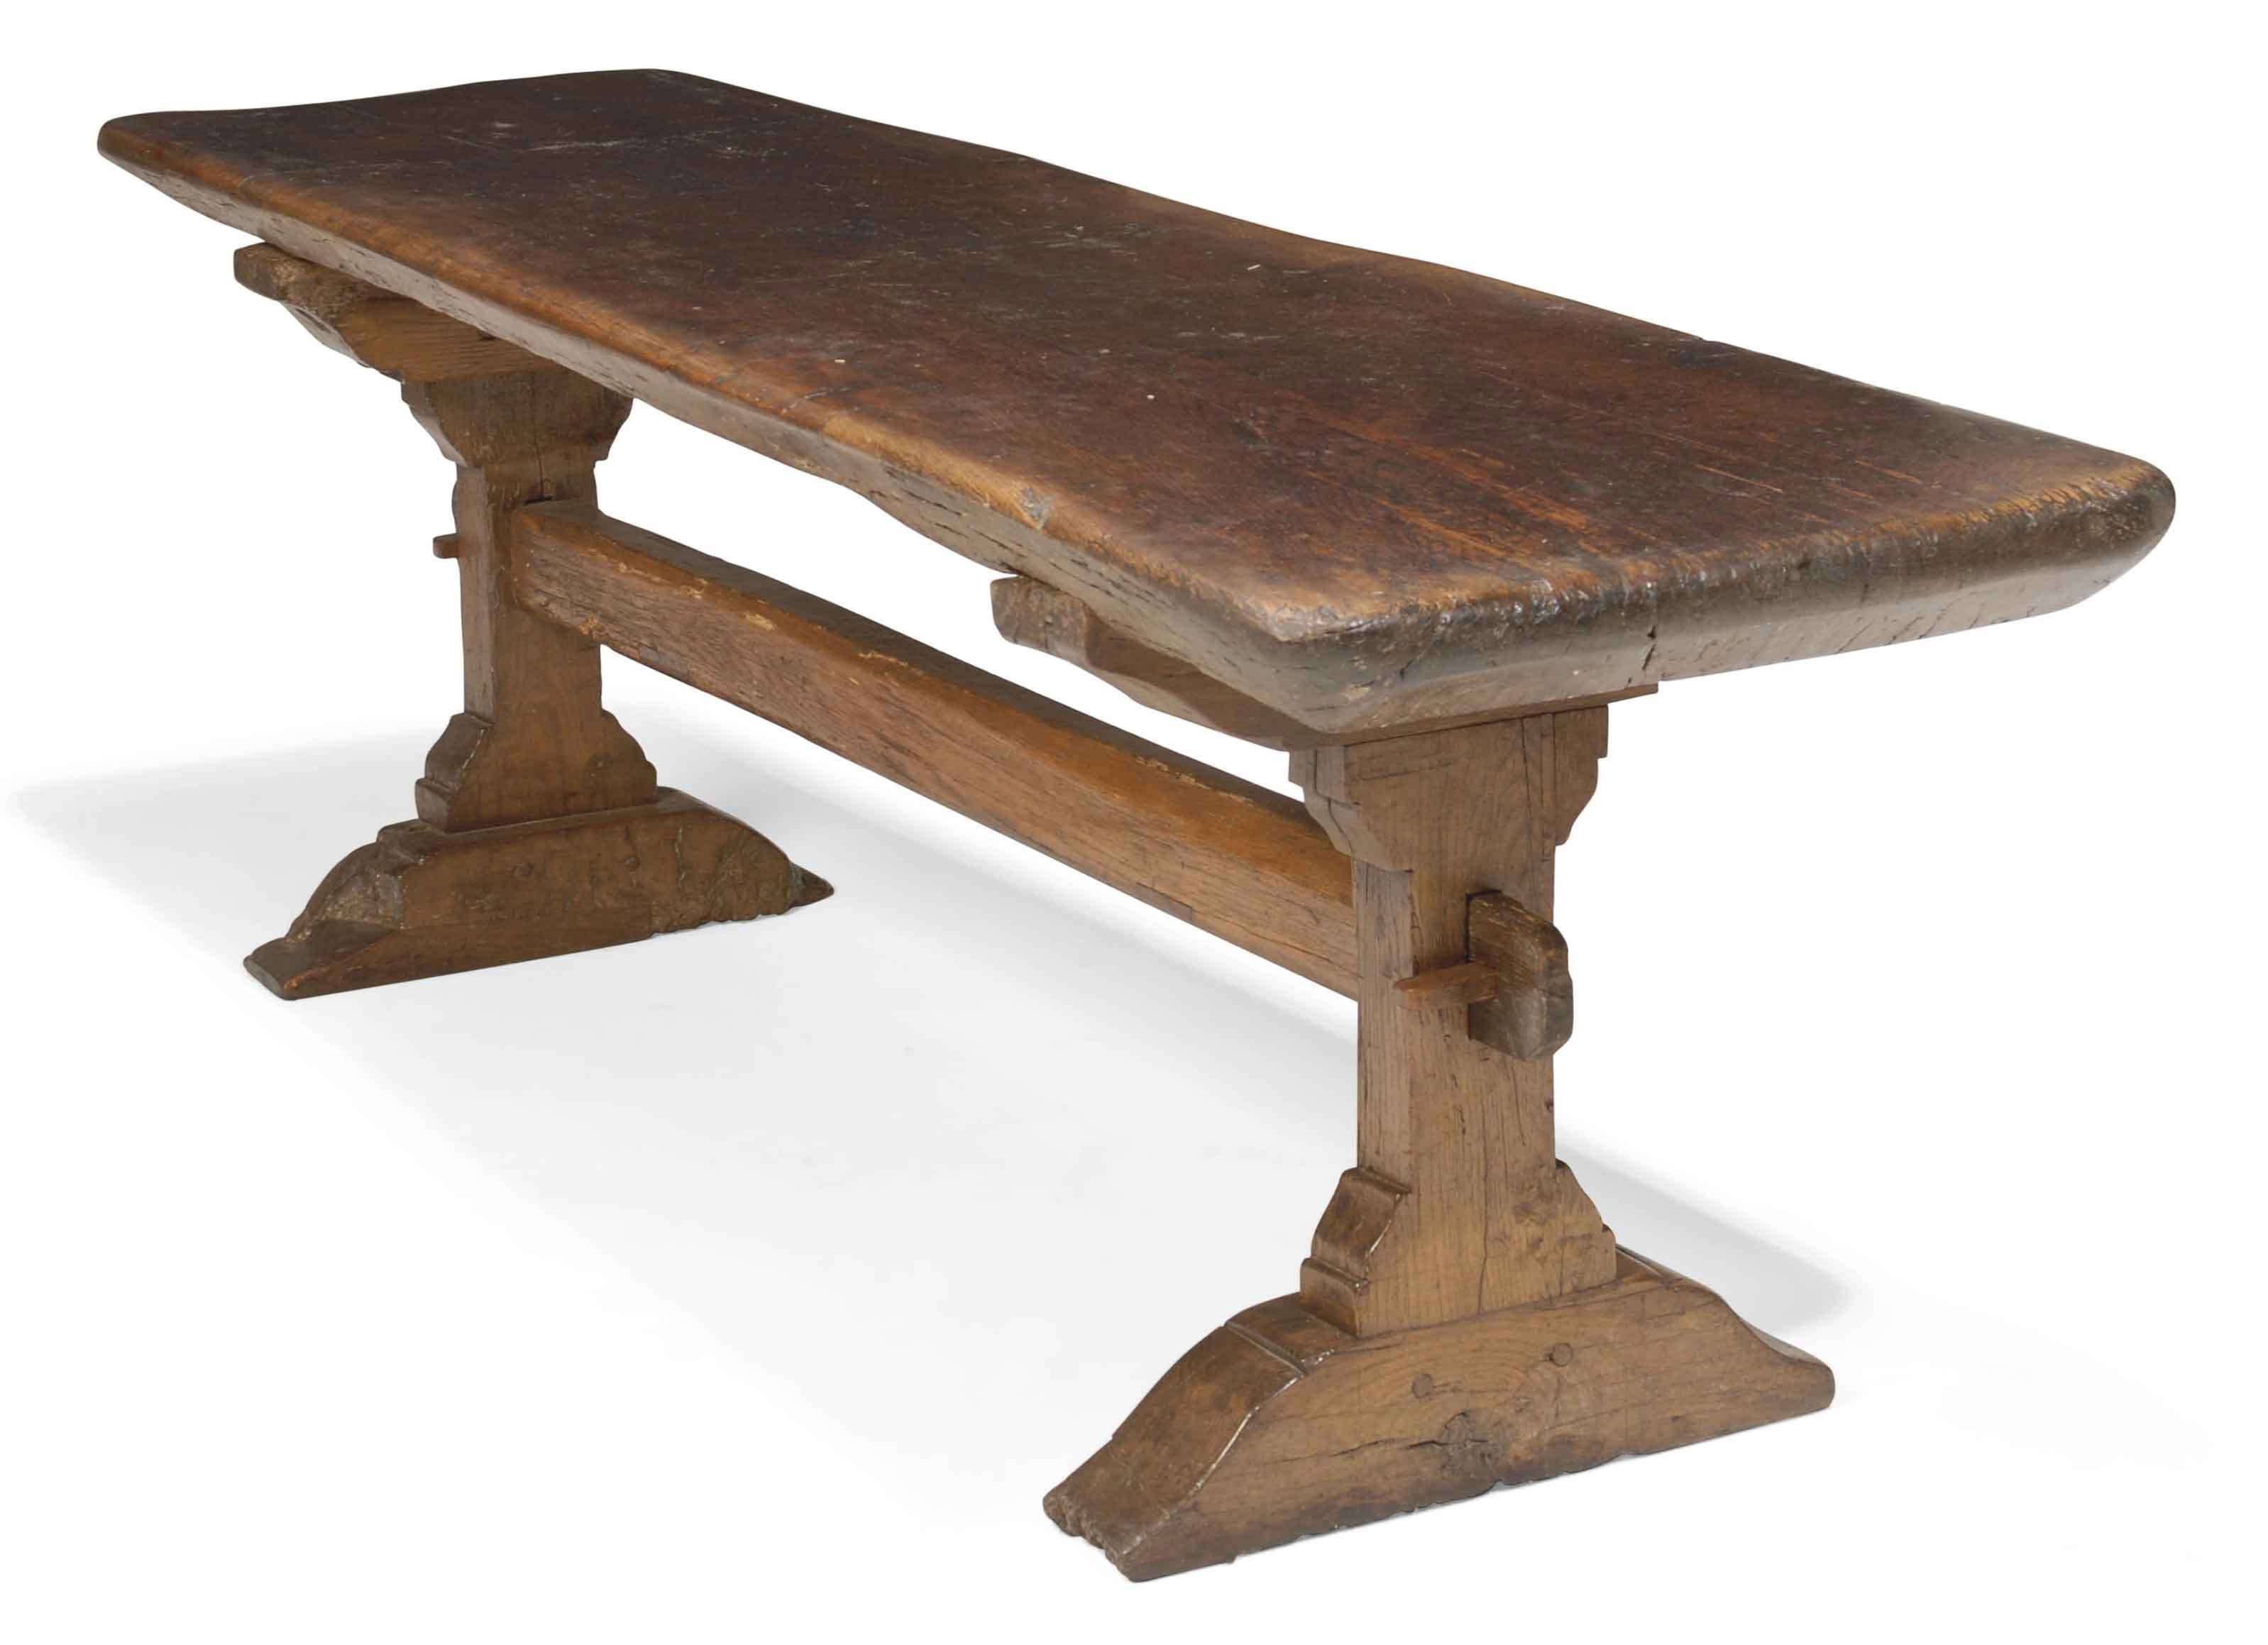 Pin By Celestial Morosco On One Act Play Trestle Table Medieval Furniture Table